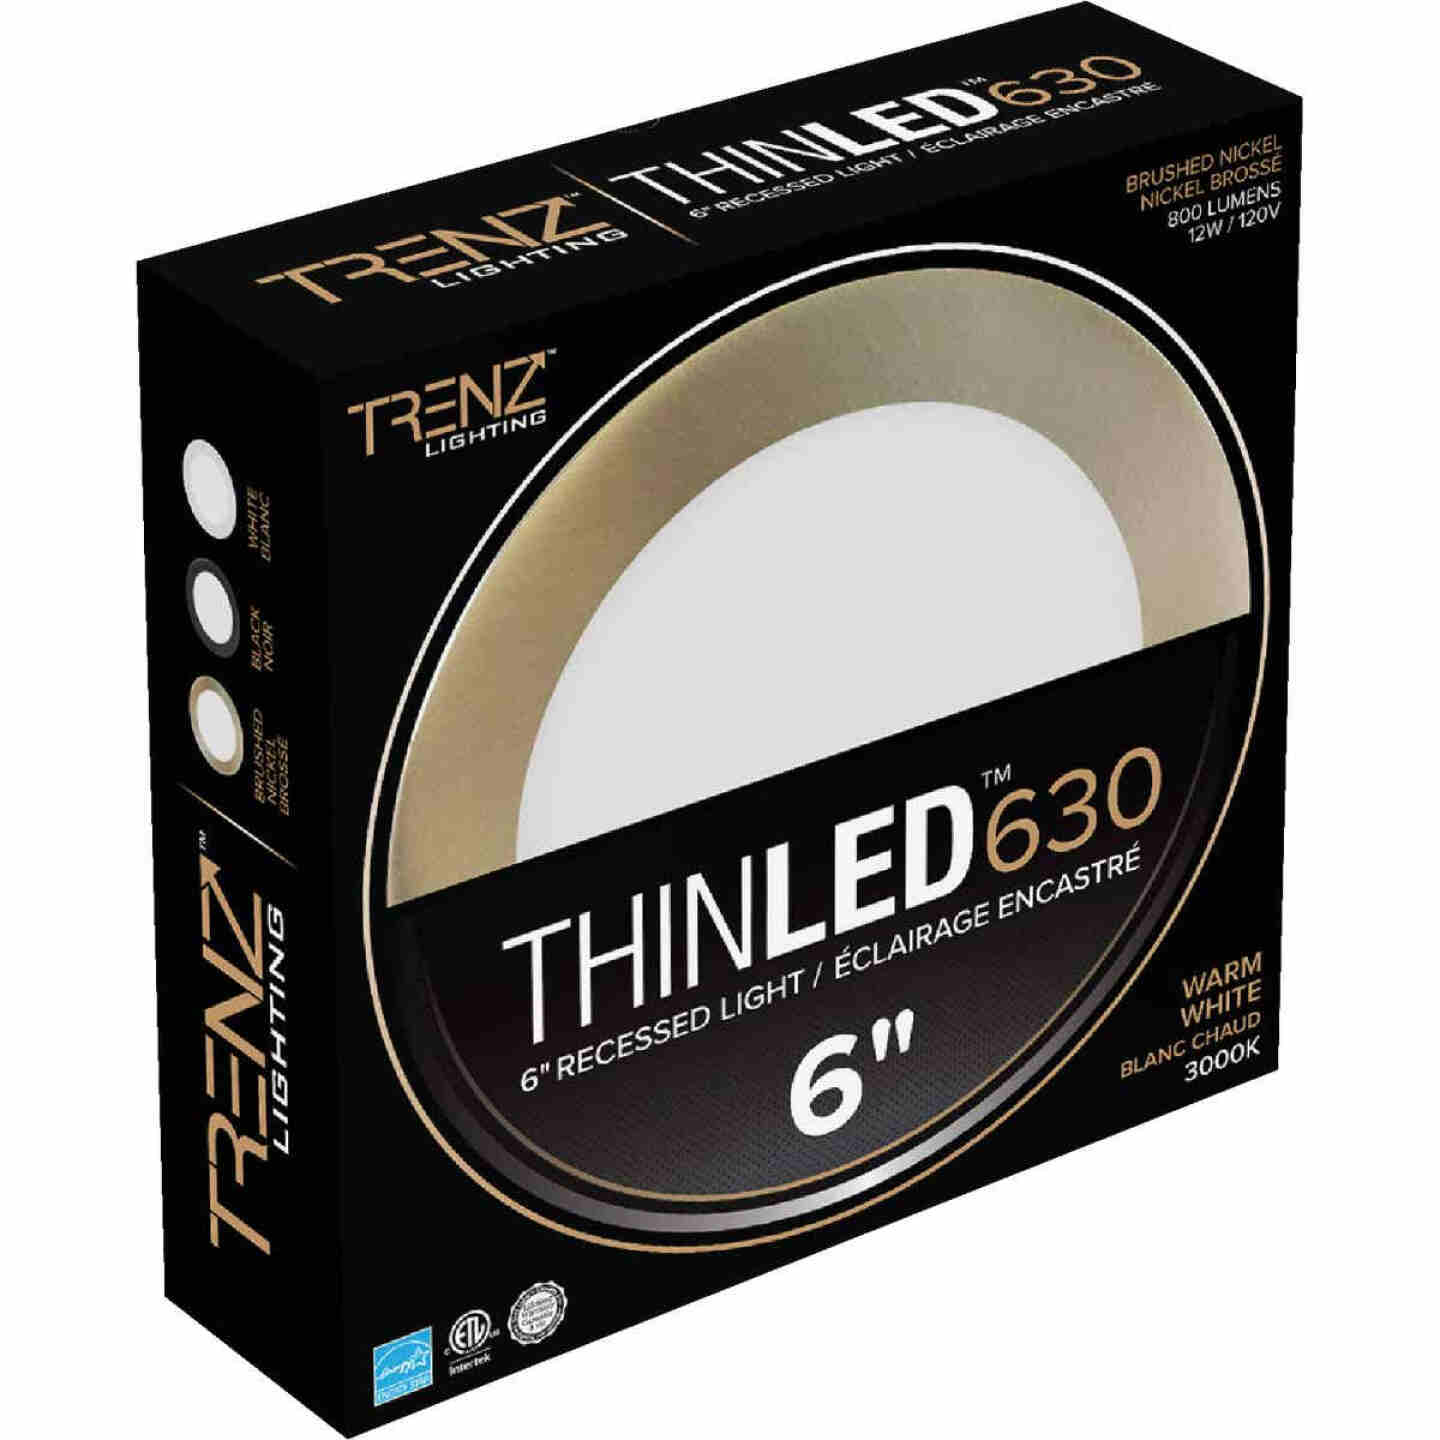 Liteline Trenz ThinLED 6 In. New Construction/Remodel IC Rated White 800 Lm. 3000K Recessed Light Kit Image 1